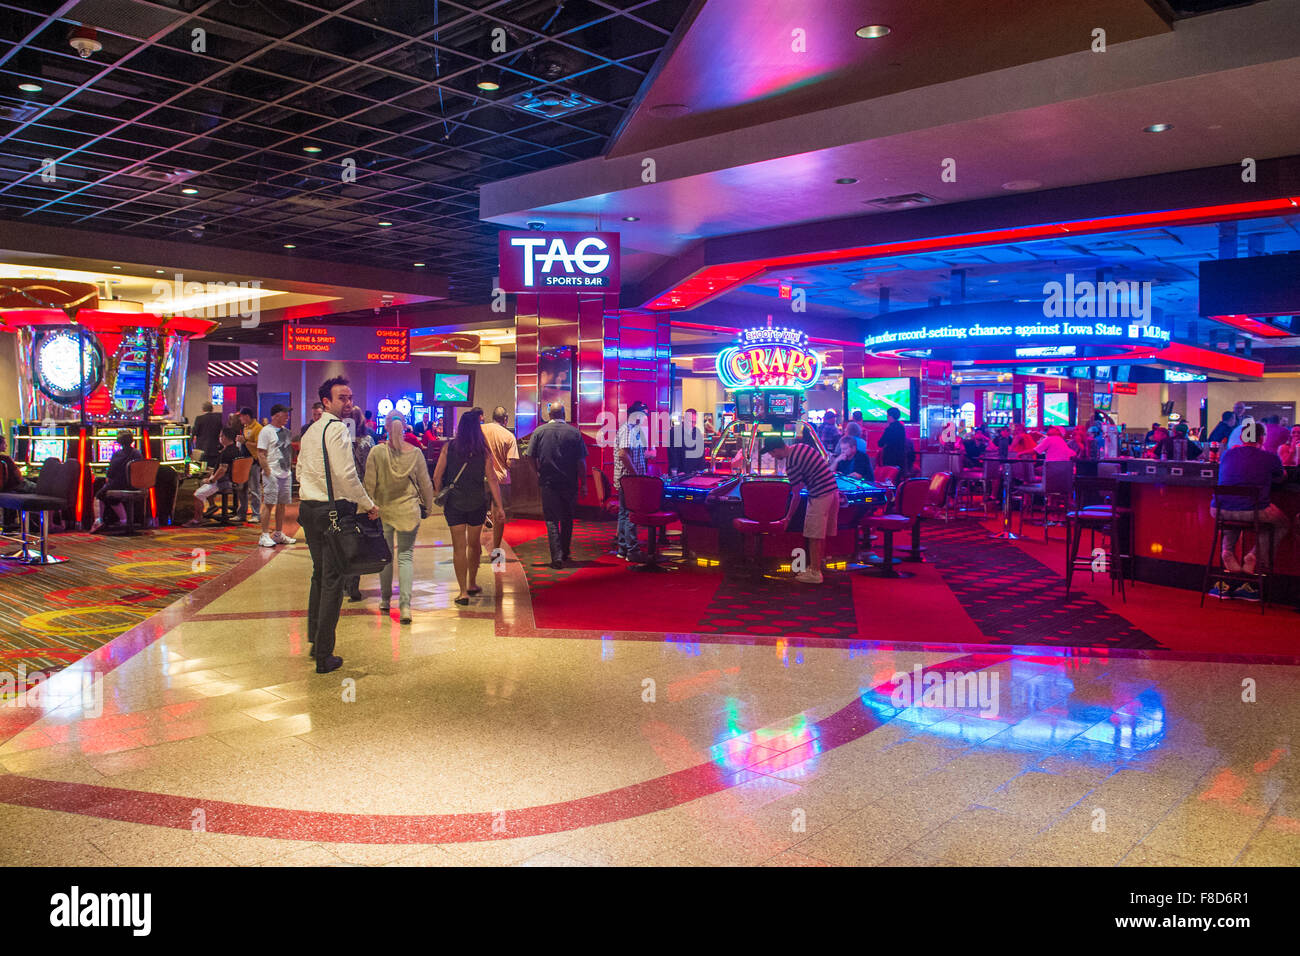 the interior of linq hotel and casino in las vegas stock photo 91259813 alamy. Black Bedroom Furniture Sets. Home Design Ideas